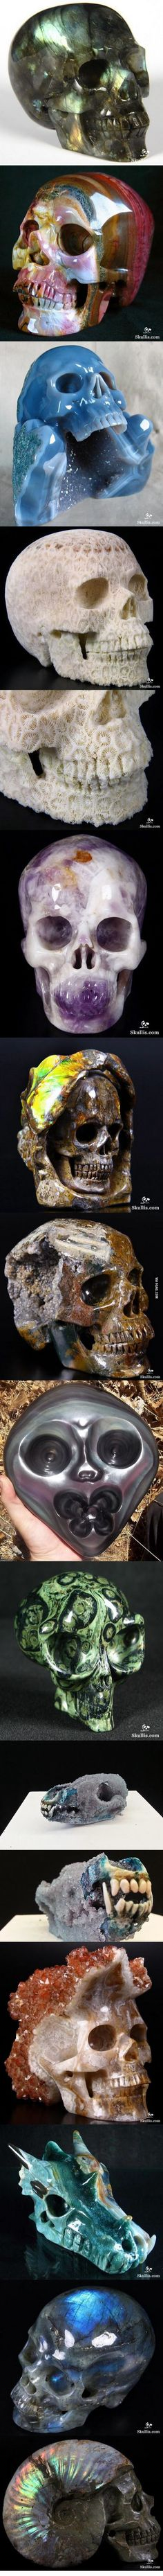 Skulls carved from minerals and coral.